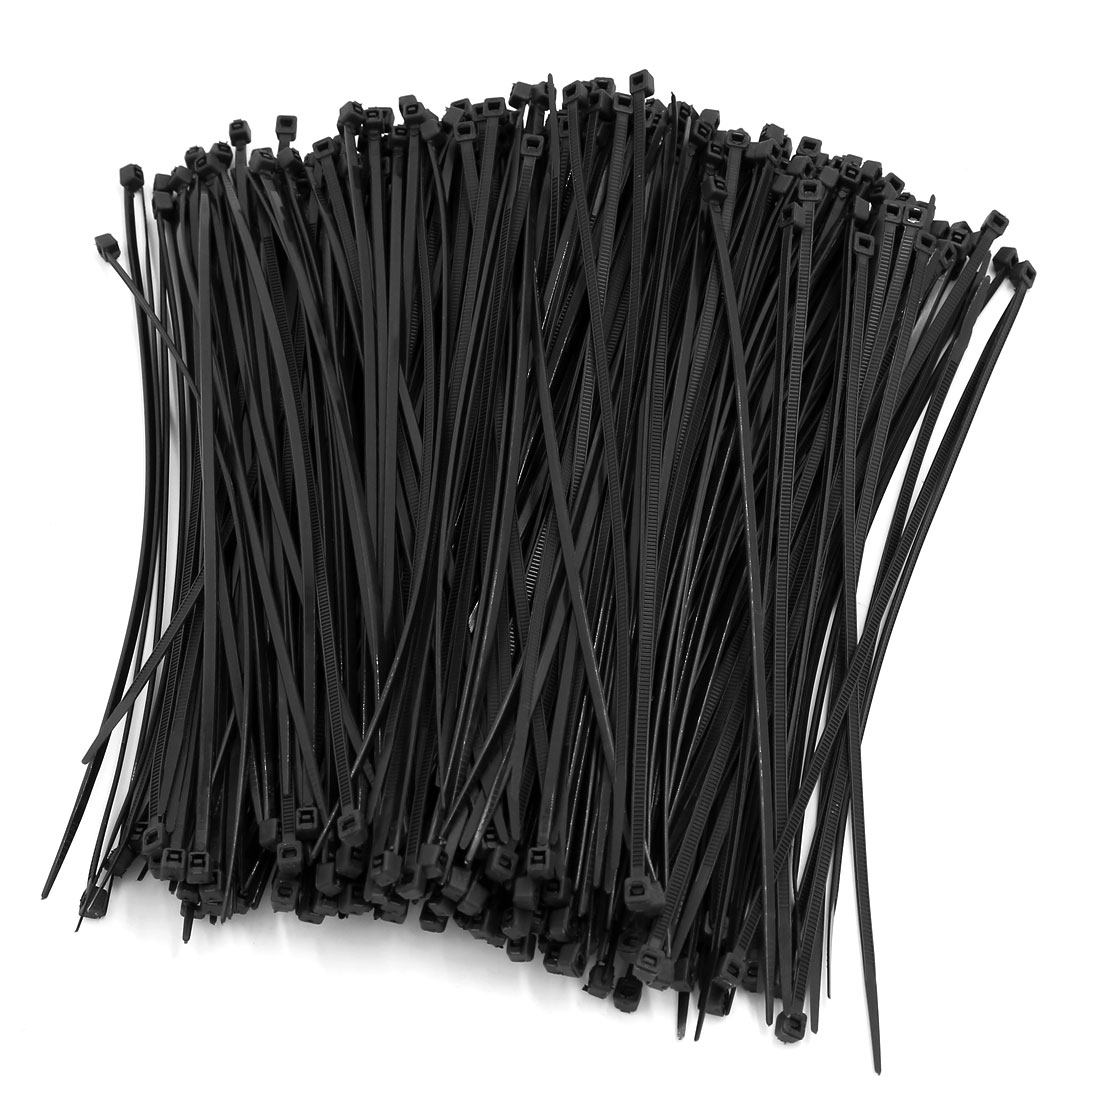 500 Pcs 193mm Long 3mm Wide Nylon Fastener Cable Tie Wire Zip Cord Strap Black